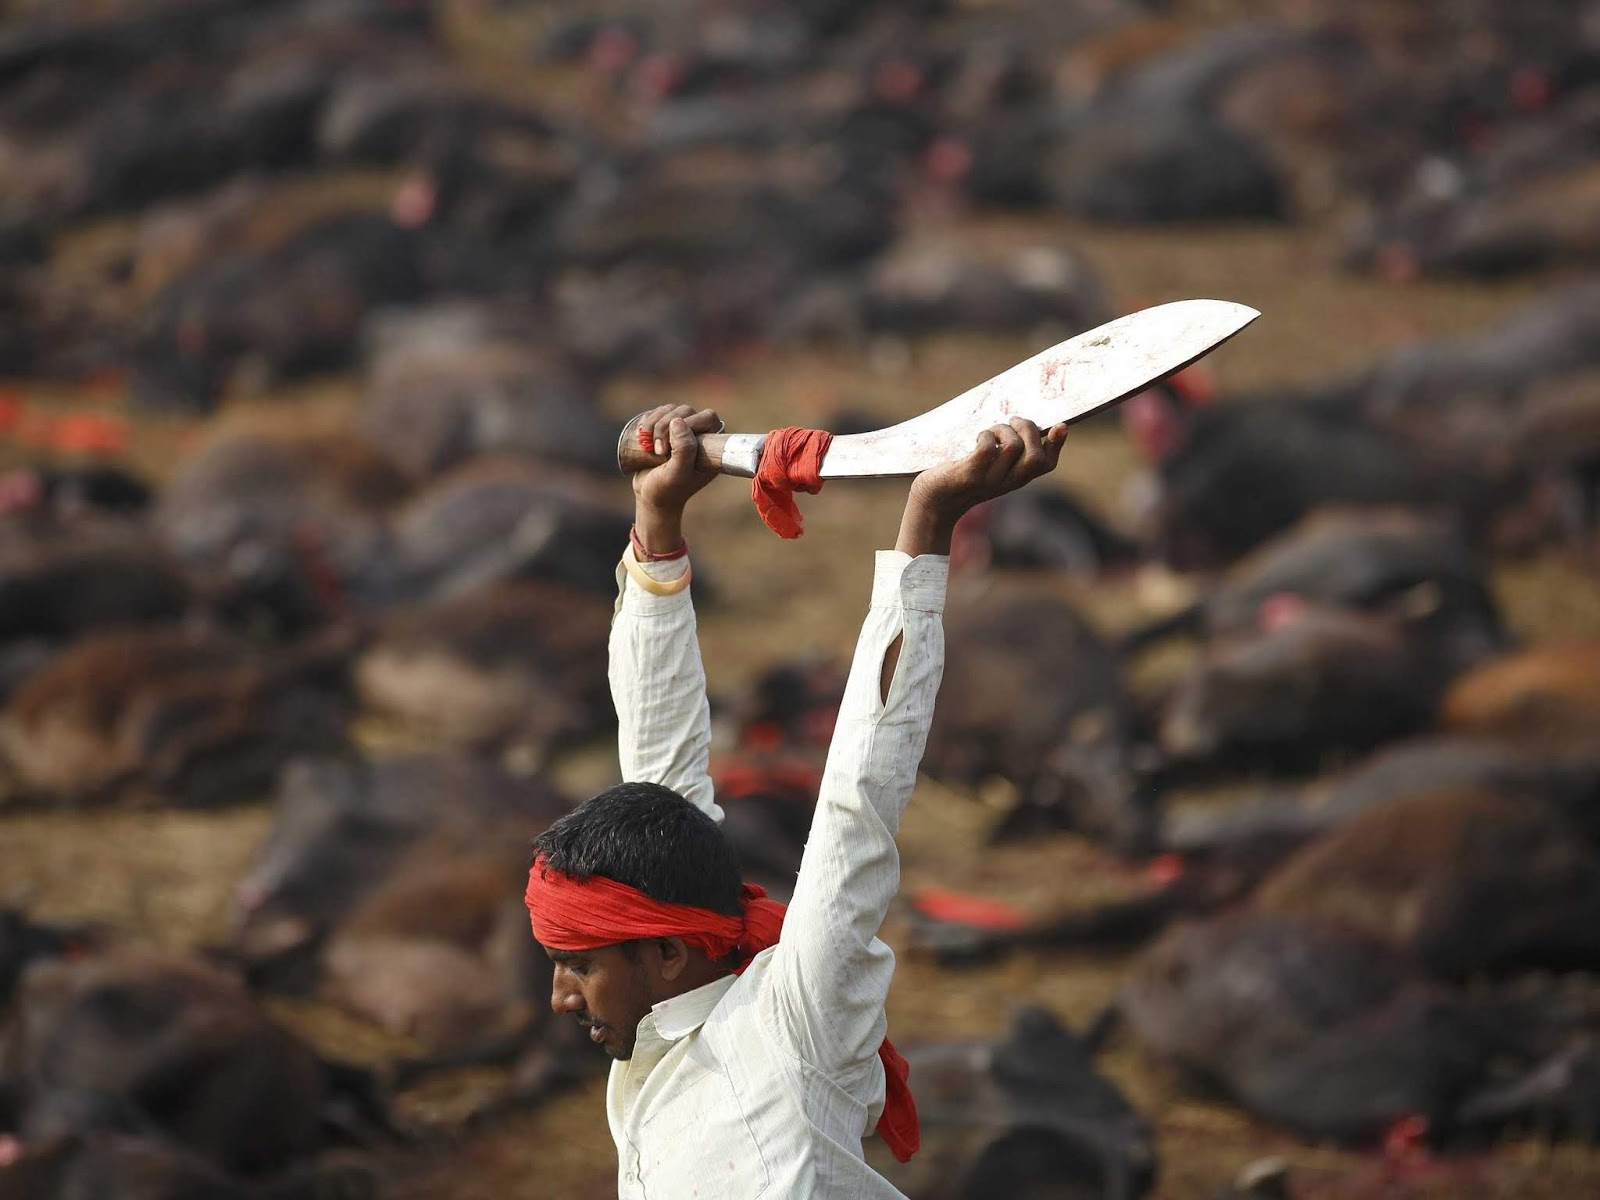 Animal sacrifice is illegal. The act of animal sacrifices is covered under Local Municipal Corporation Acts, Prevention of Cruelty to Animals Act, 1960, Wildlife (Protection) Act, 1972, Indian Penal Code (IPC) lawescort